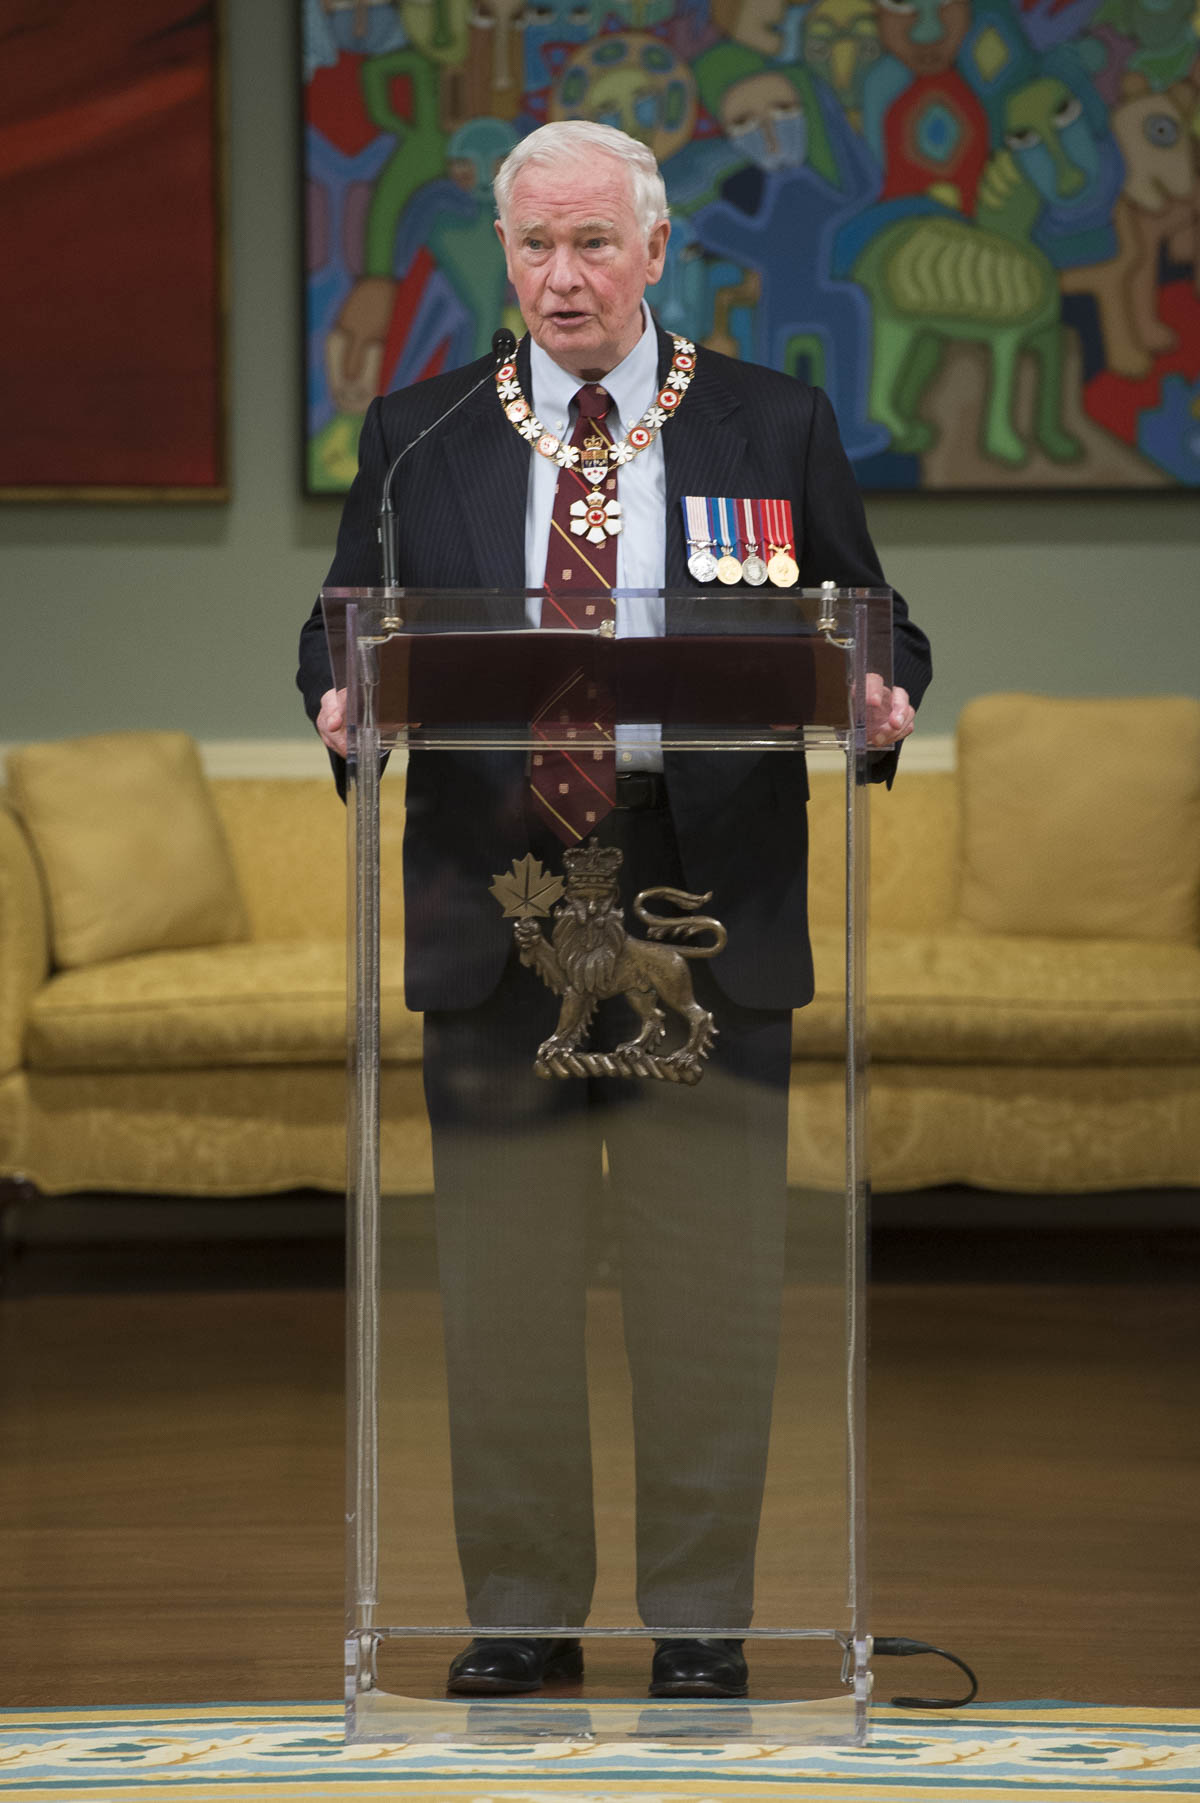 """We gather to raise awareness of Indigenous histories, cultures, achievements and concerns, and to create an environment in which reconciliation is possible,"" said His Excellency. ""There is so much work to be done, but today we pause to celebrate your achievements with some of this country's top honours."""